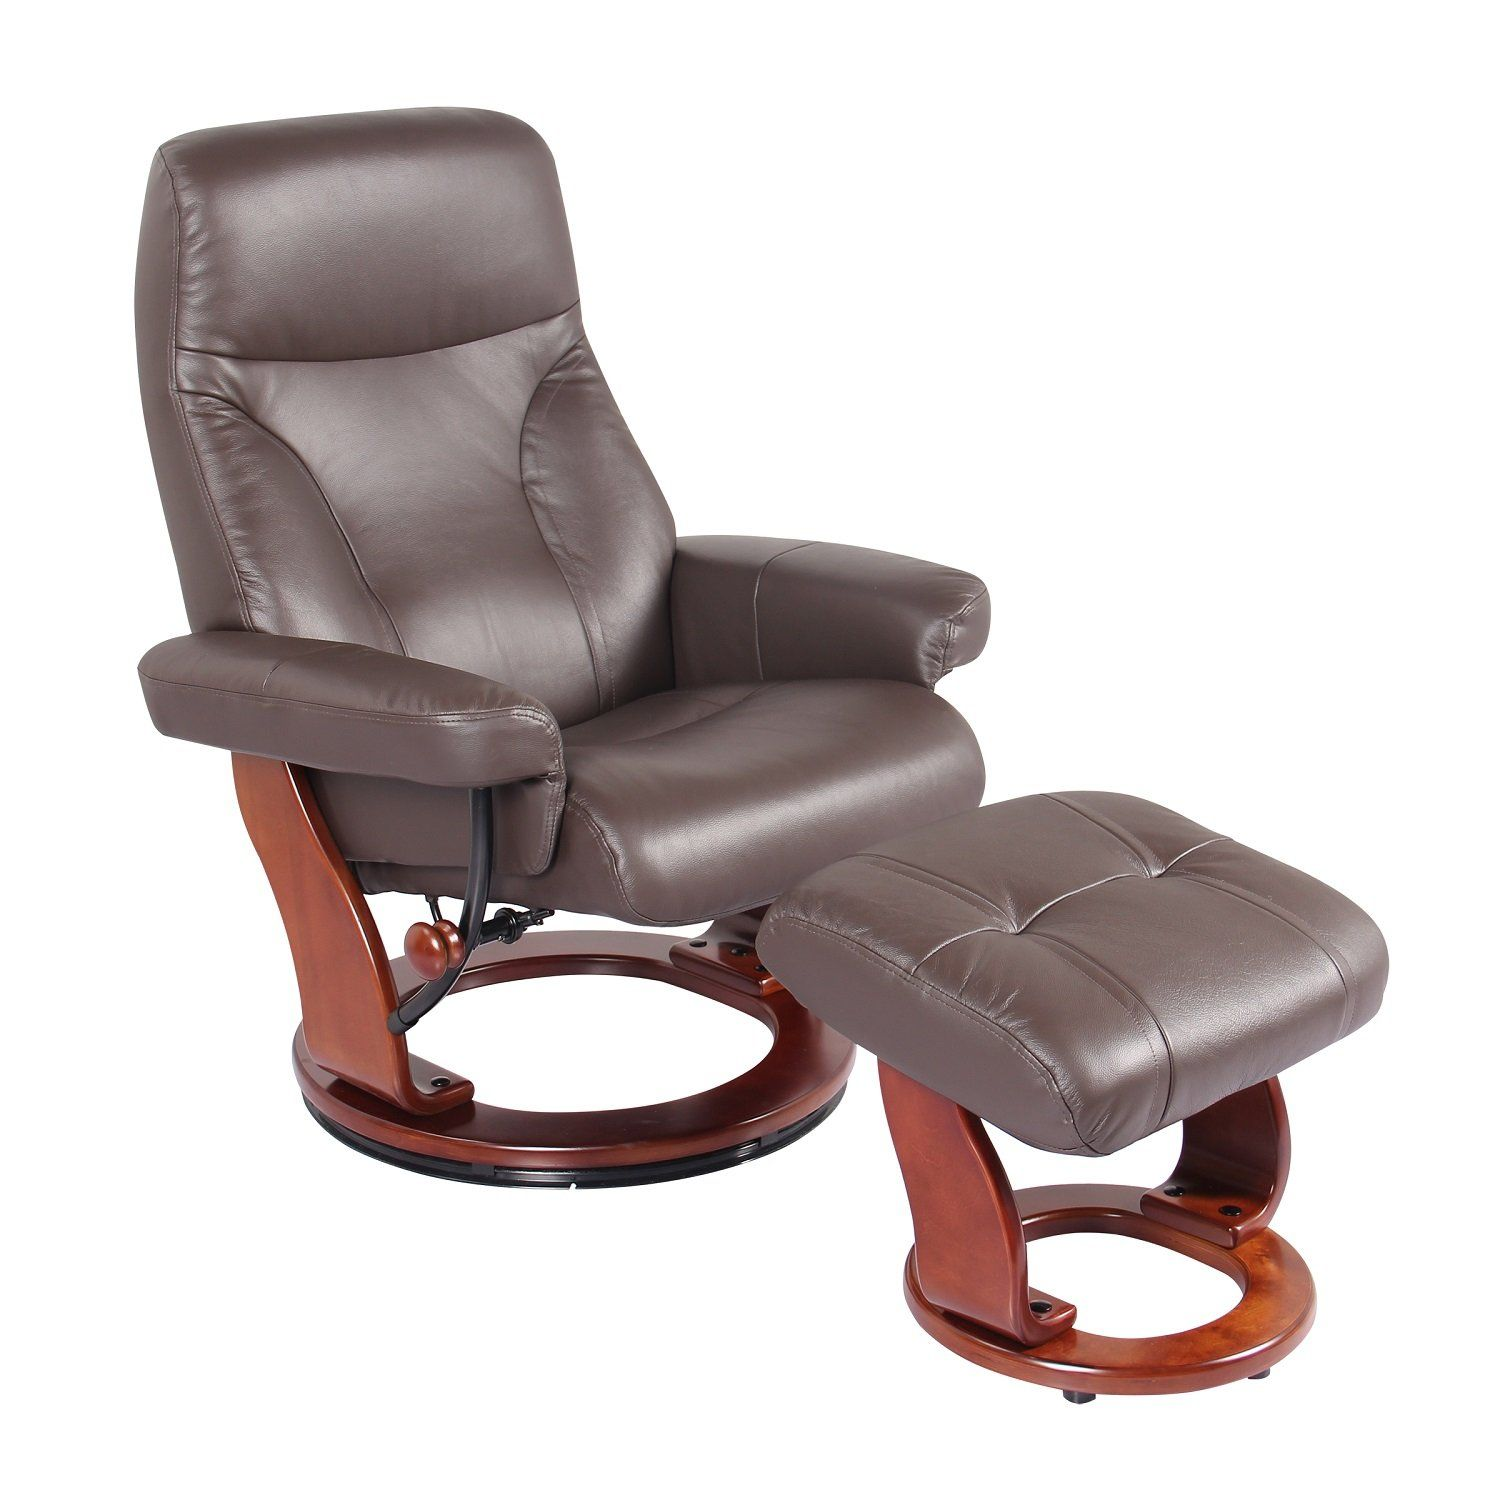 NewRidge Home Goods S7440073 NewRidge Home Leather Swivel